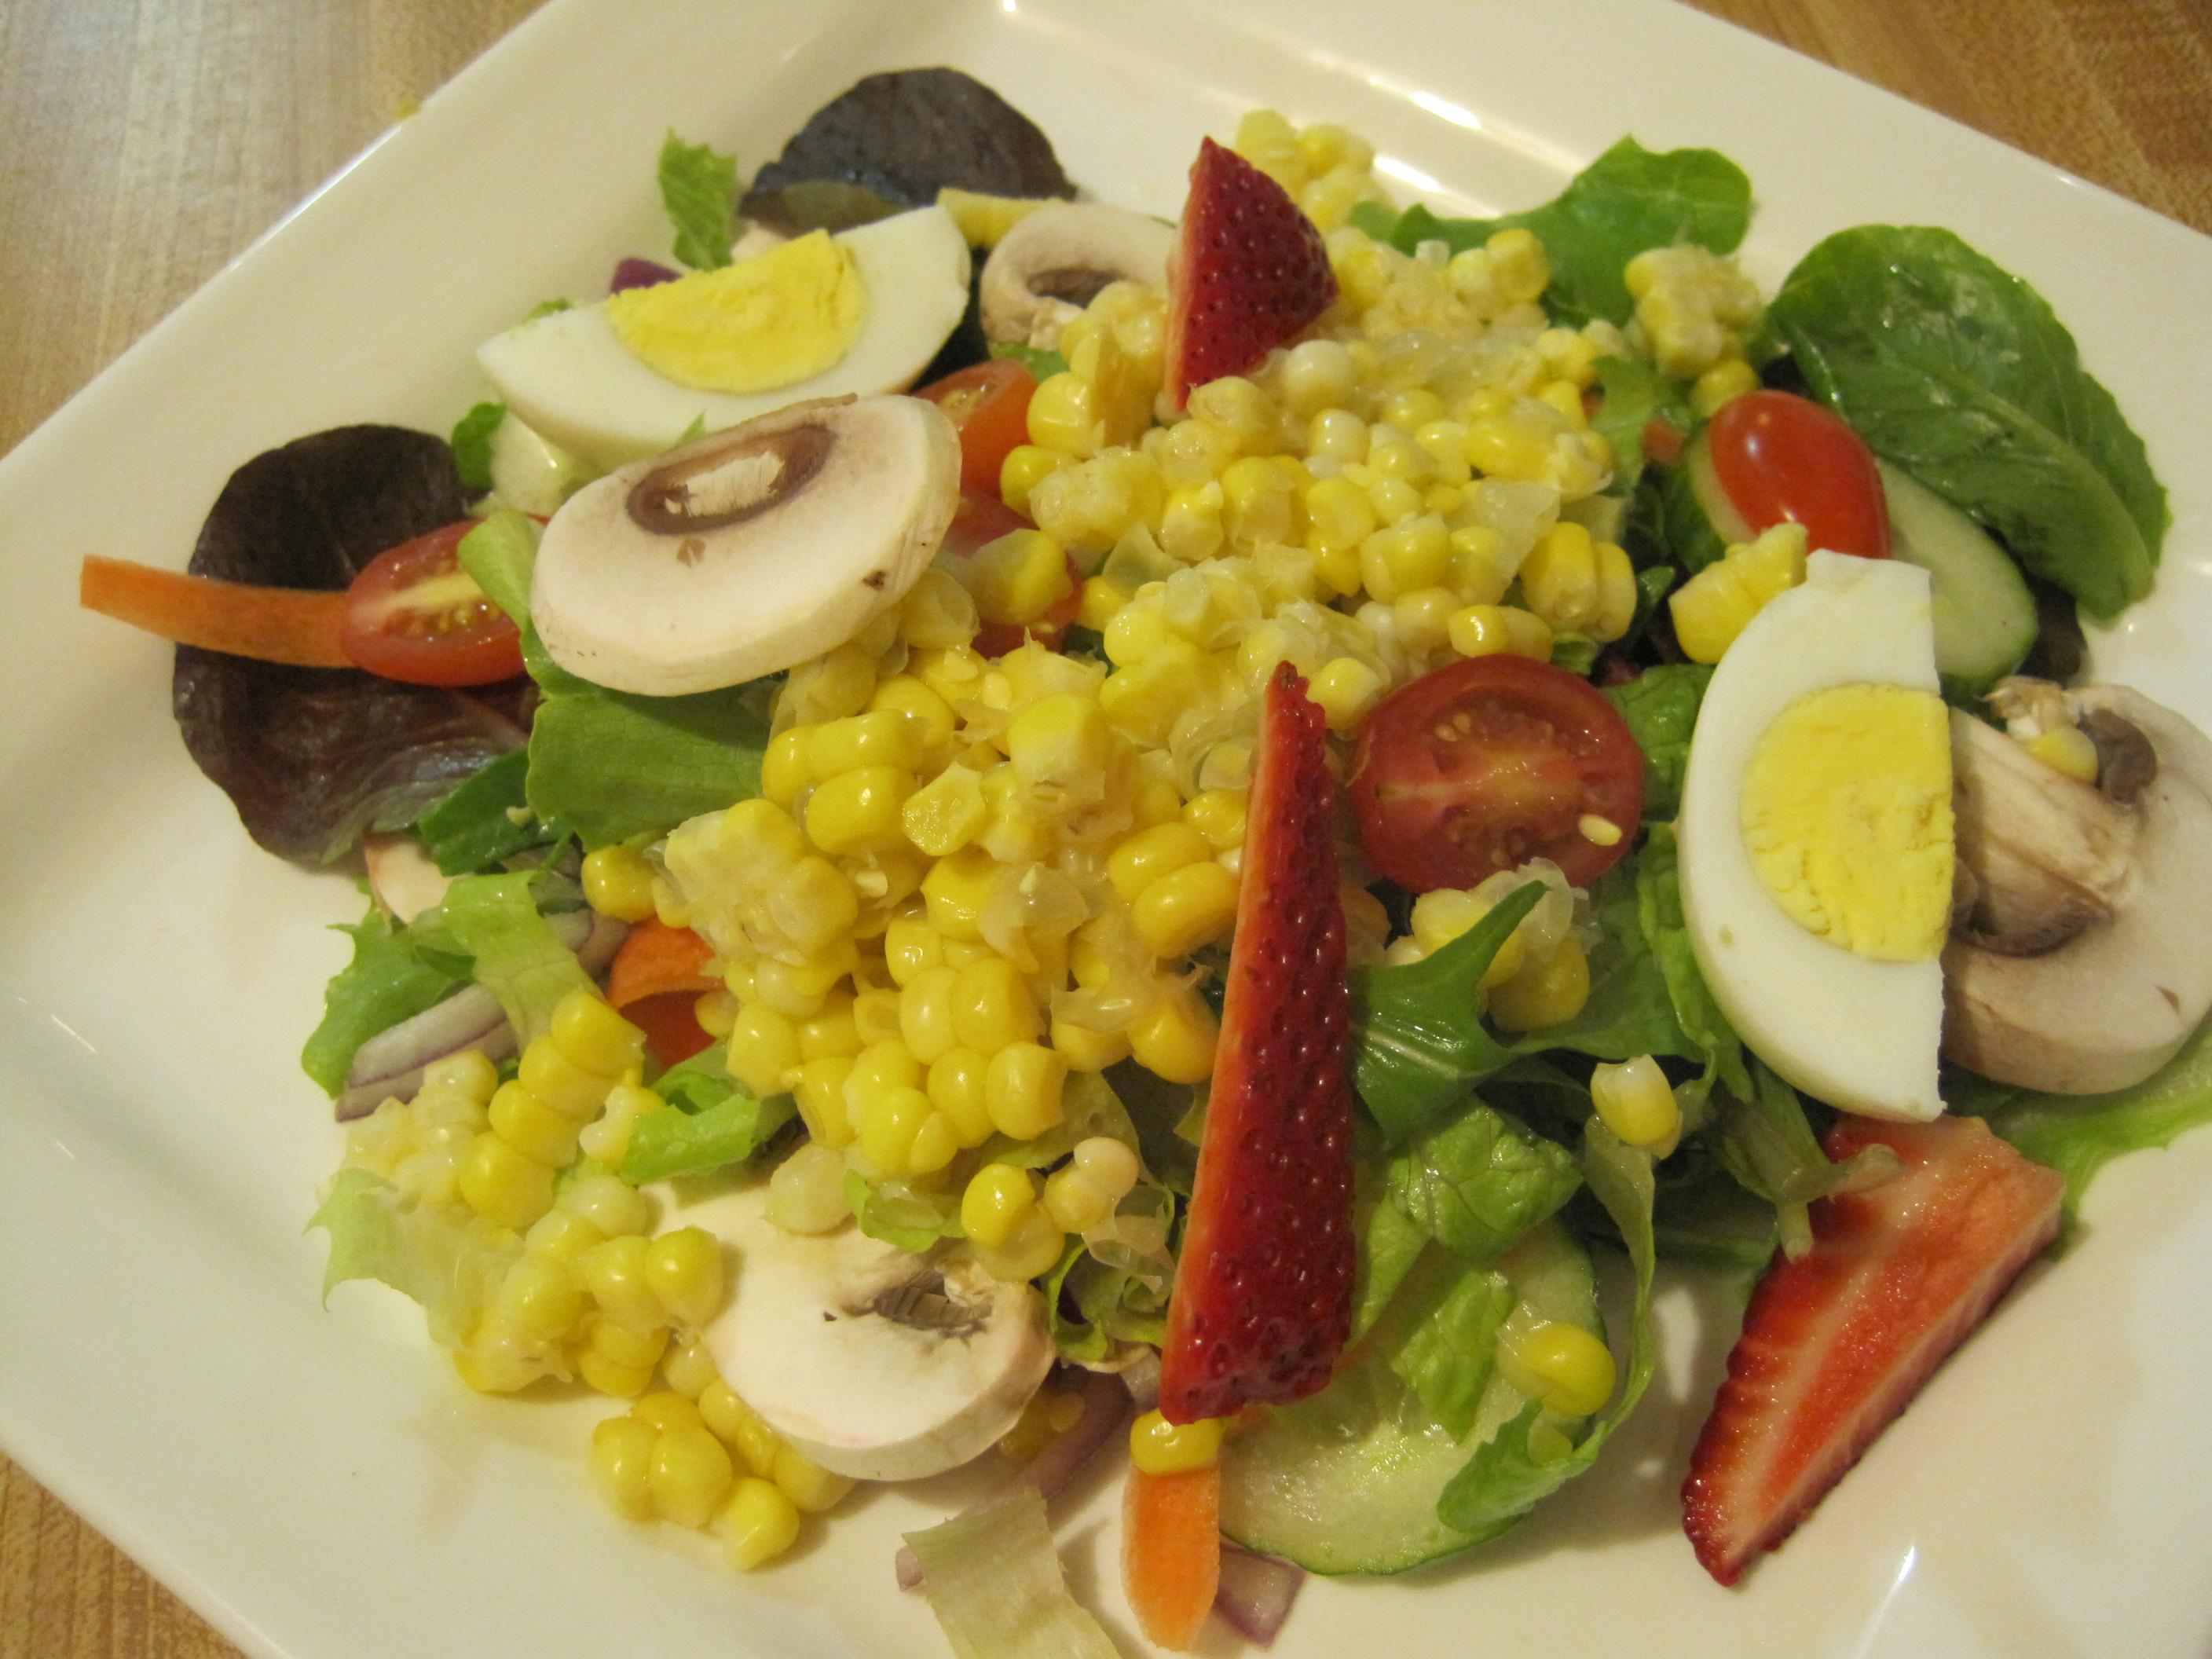 Green Salad with Corn and Strawberries